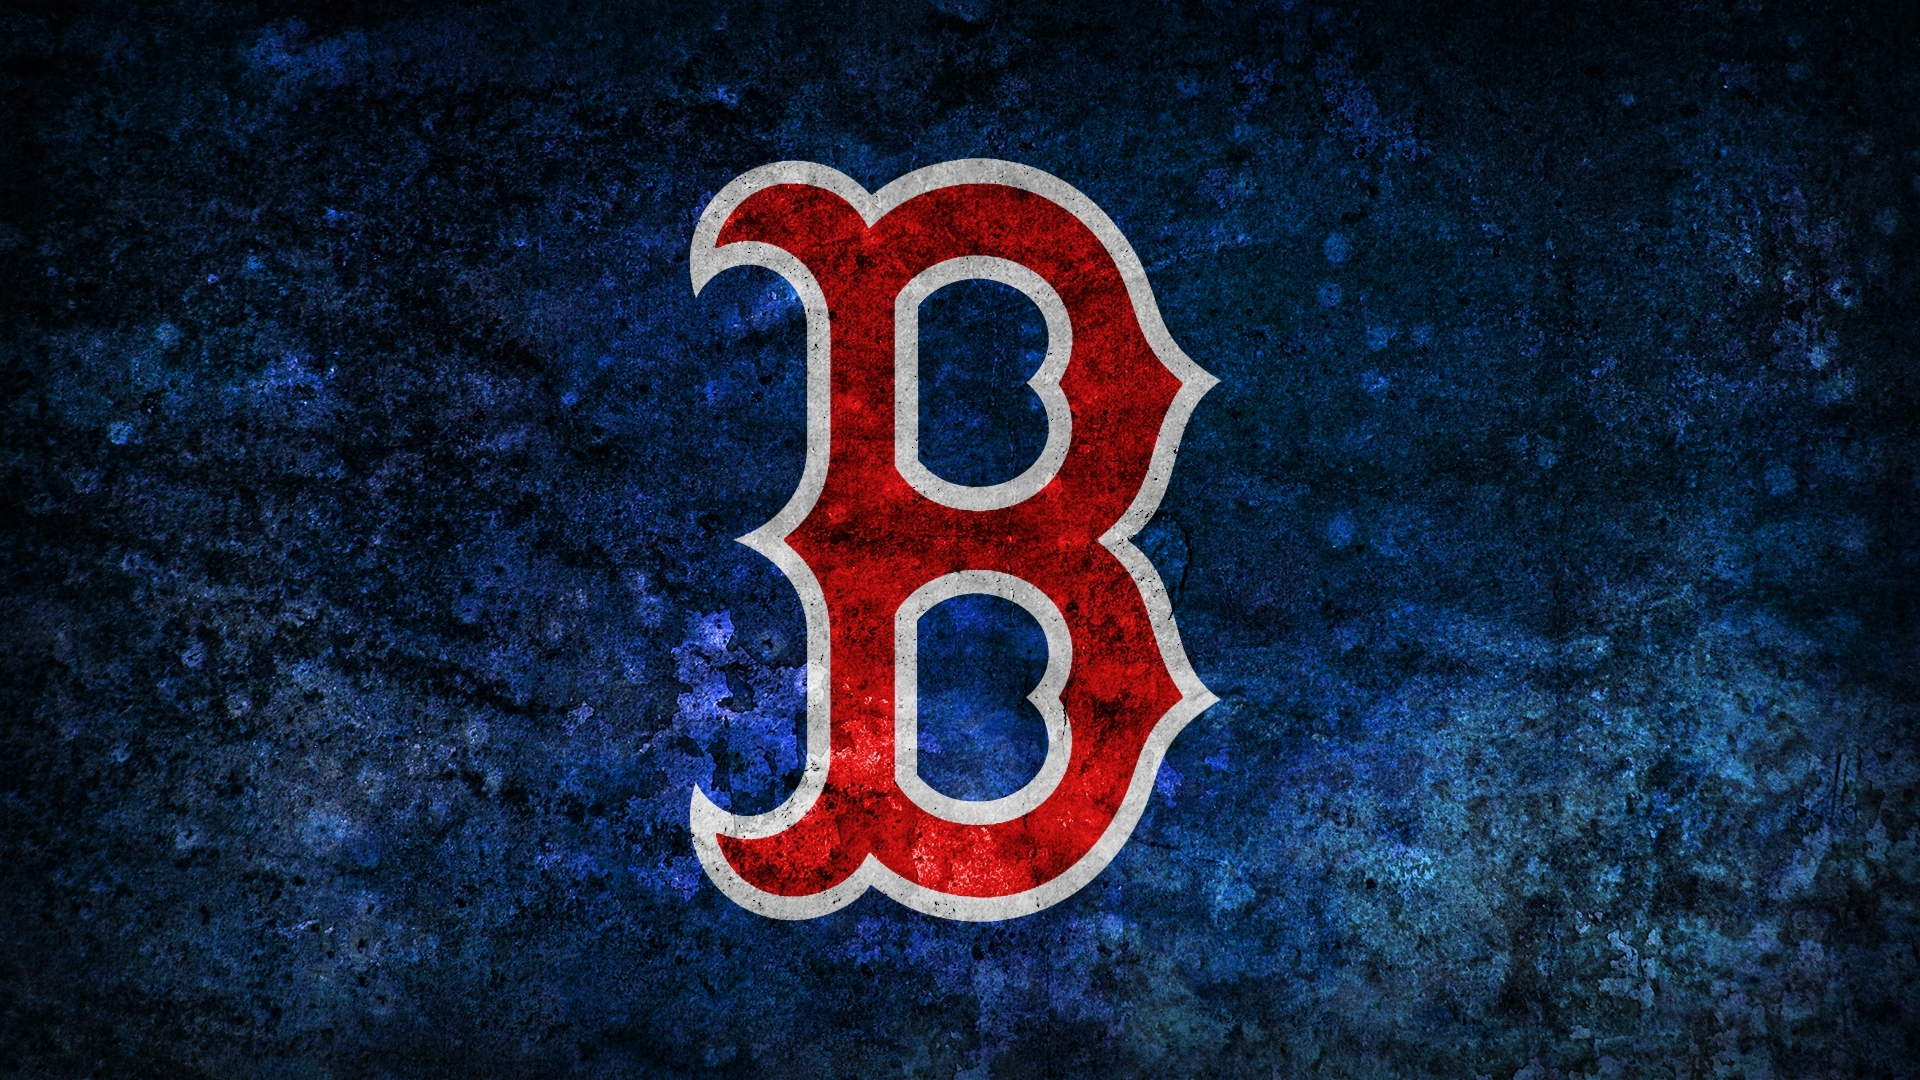 boston red sox backgrounds free download | pixelstalk